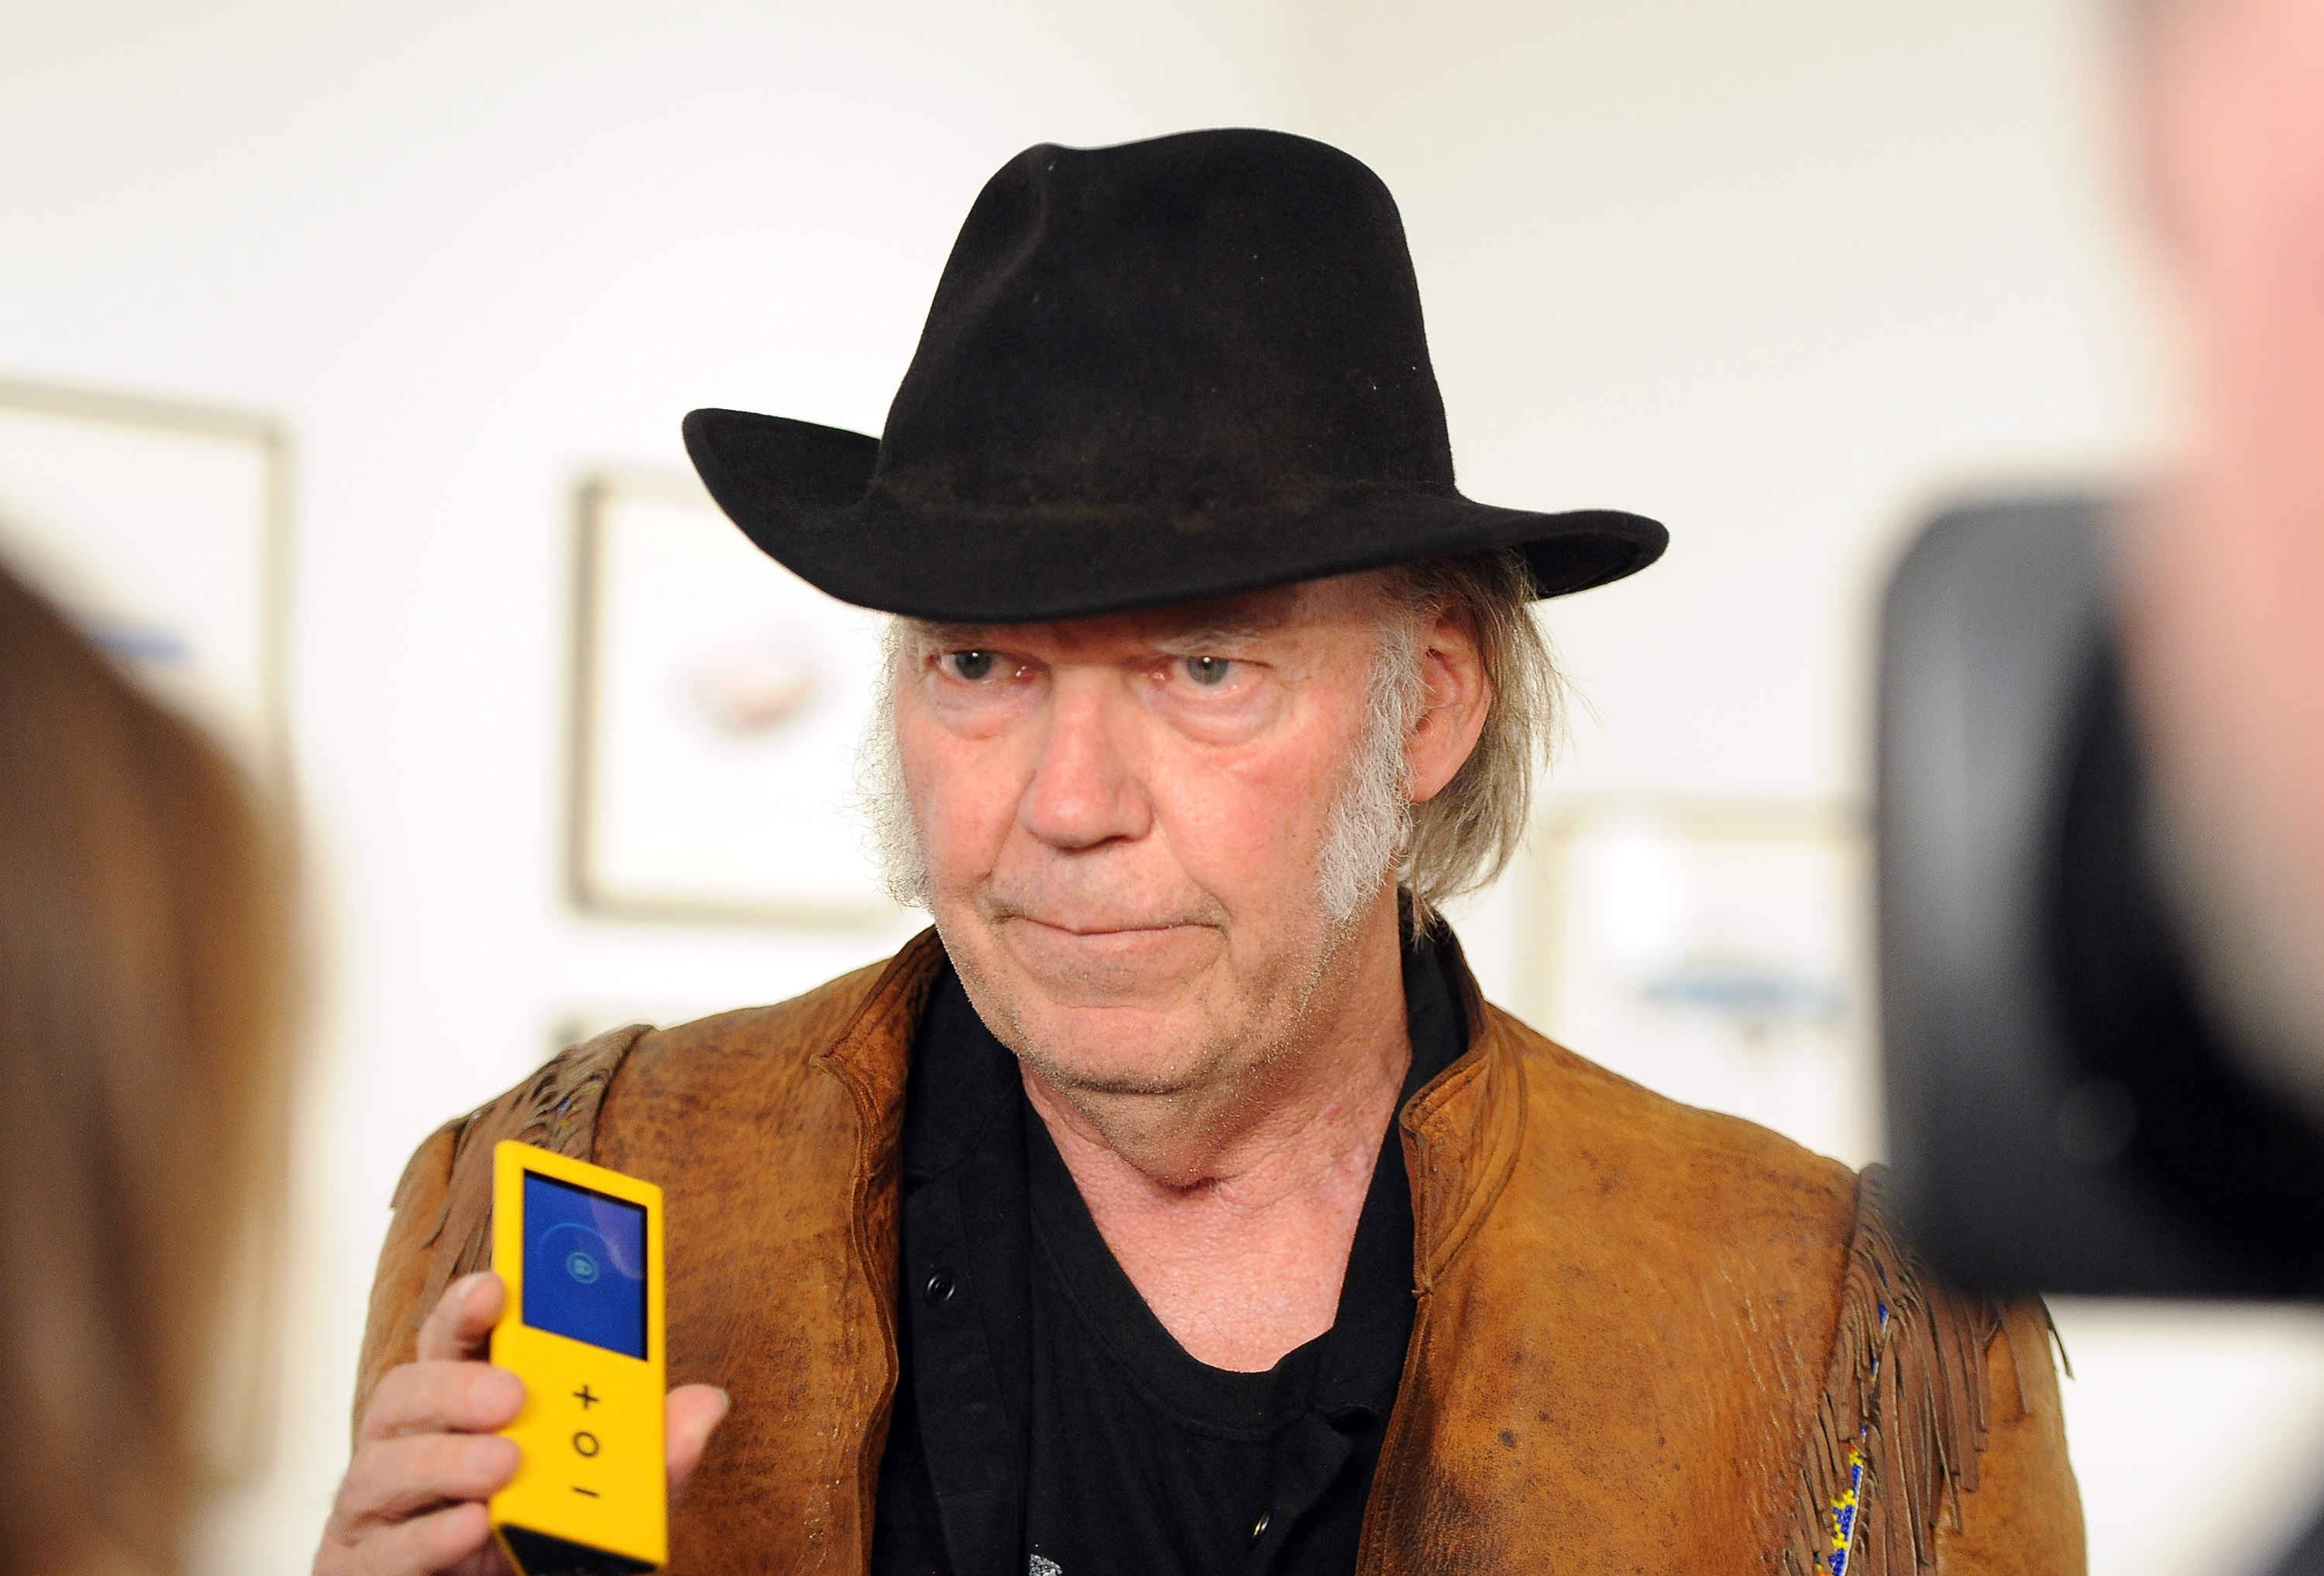 Singer Neil Young crowdfunded for his Pono device (Angela Weiss/Getty Images)